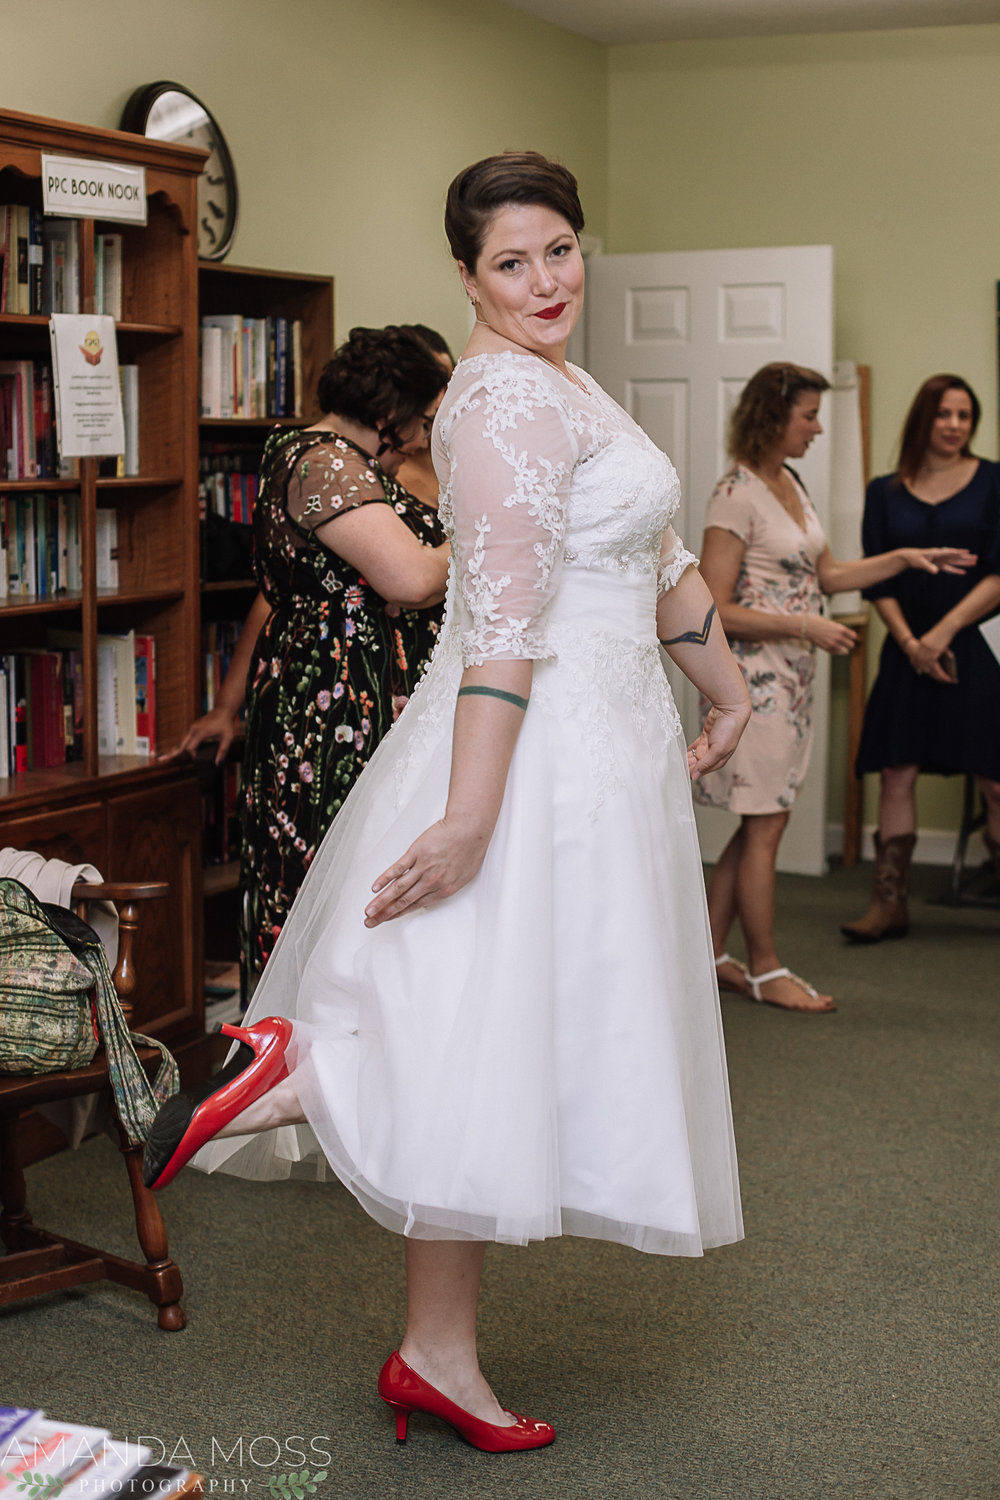 This beautiful bride opted for a bright red, low heeled pump to show off her tea length dress and to provide a POP of color.